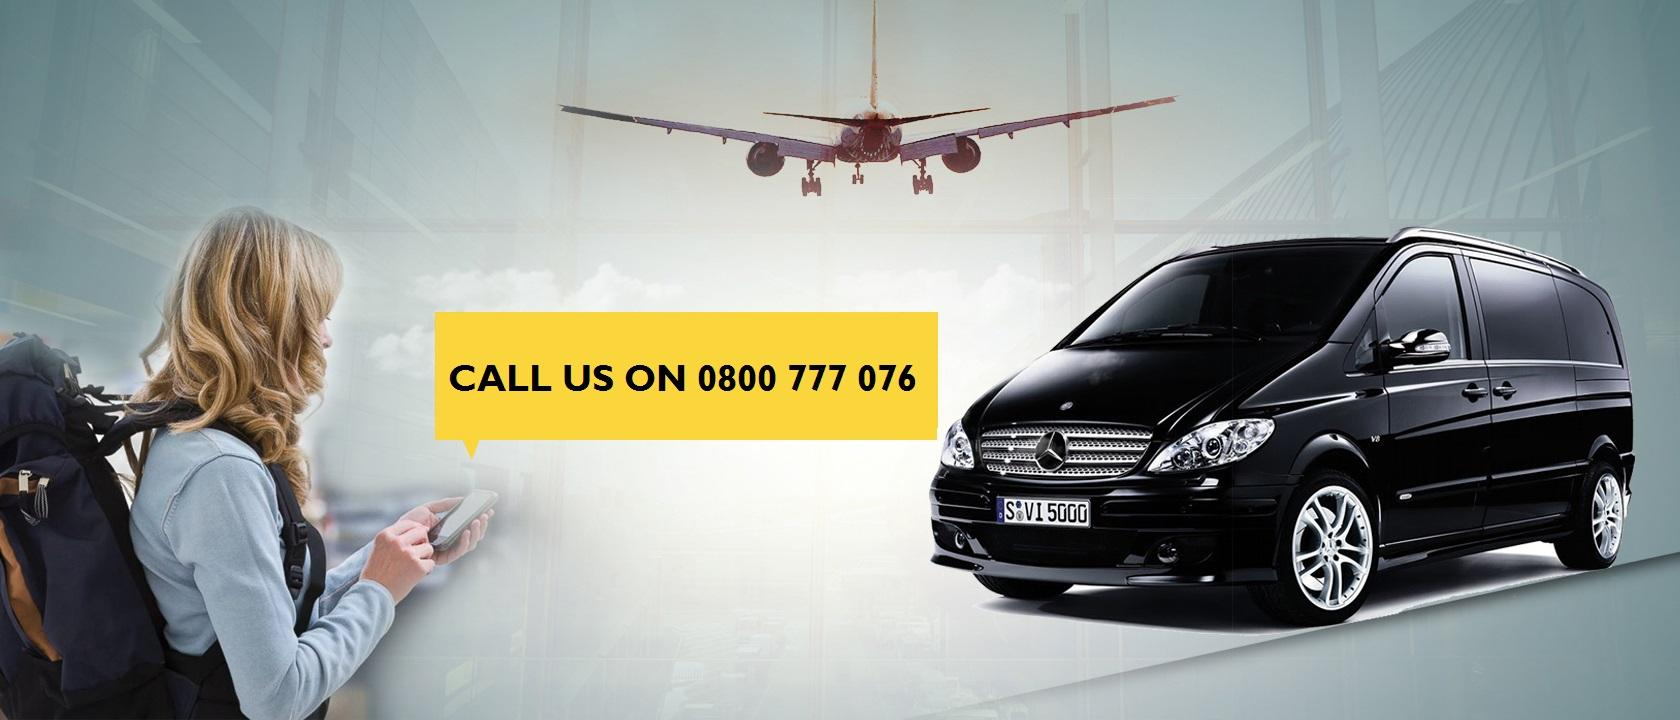 LUXURY AIRPORT VAN AND LIMO SERVICE